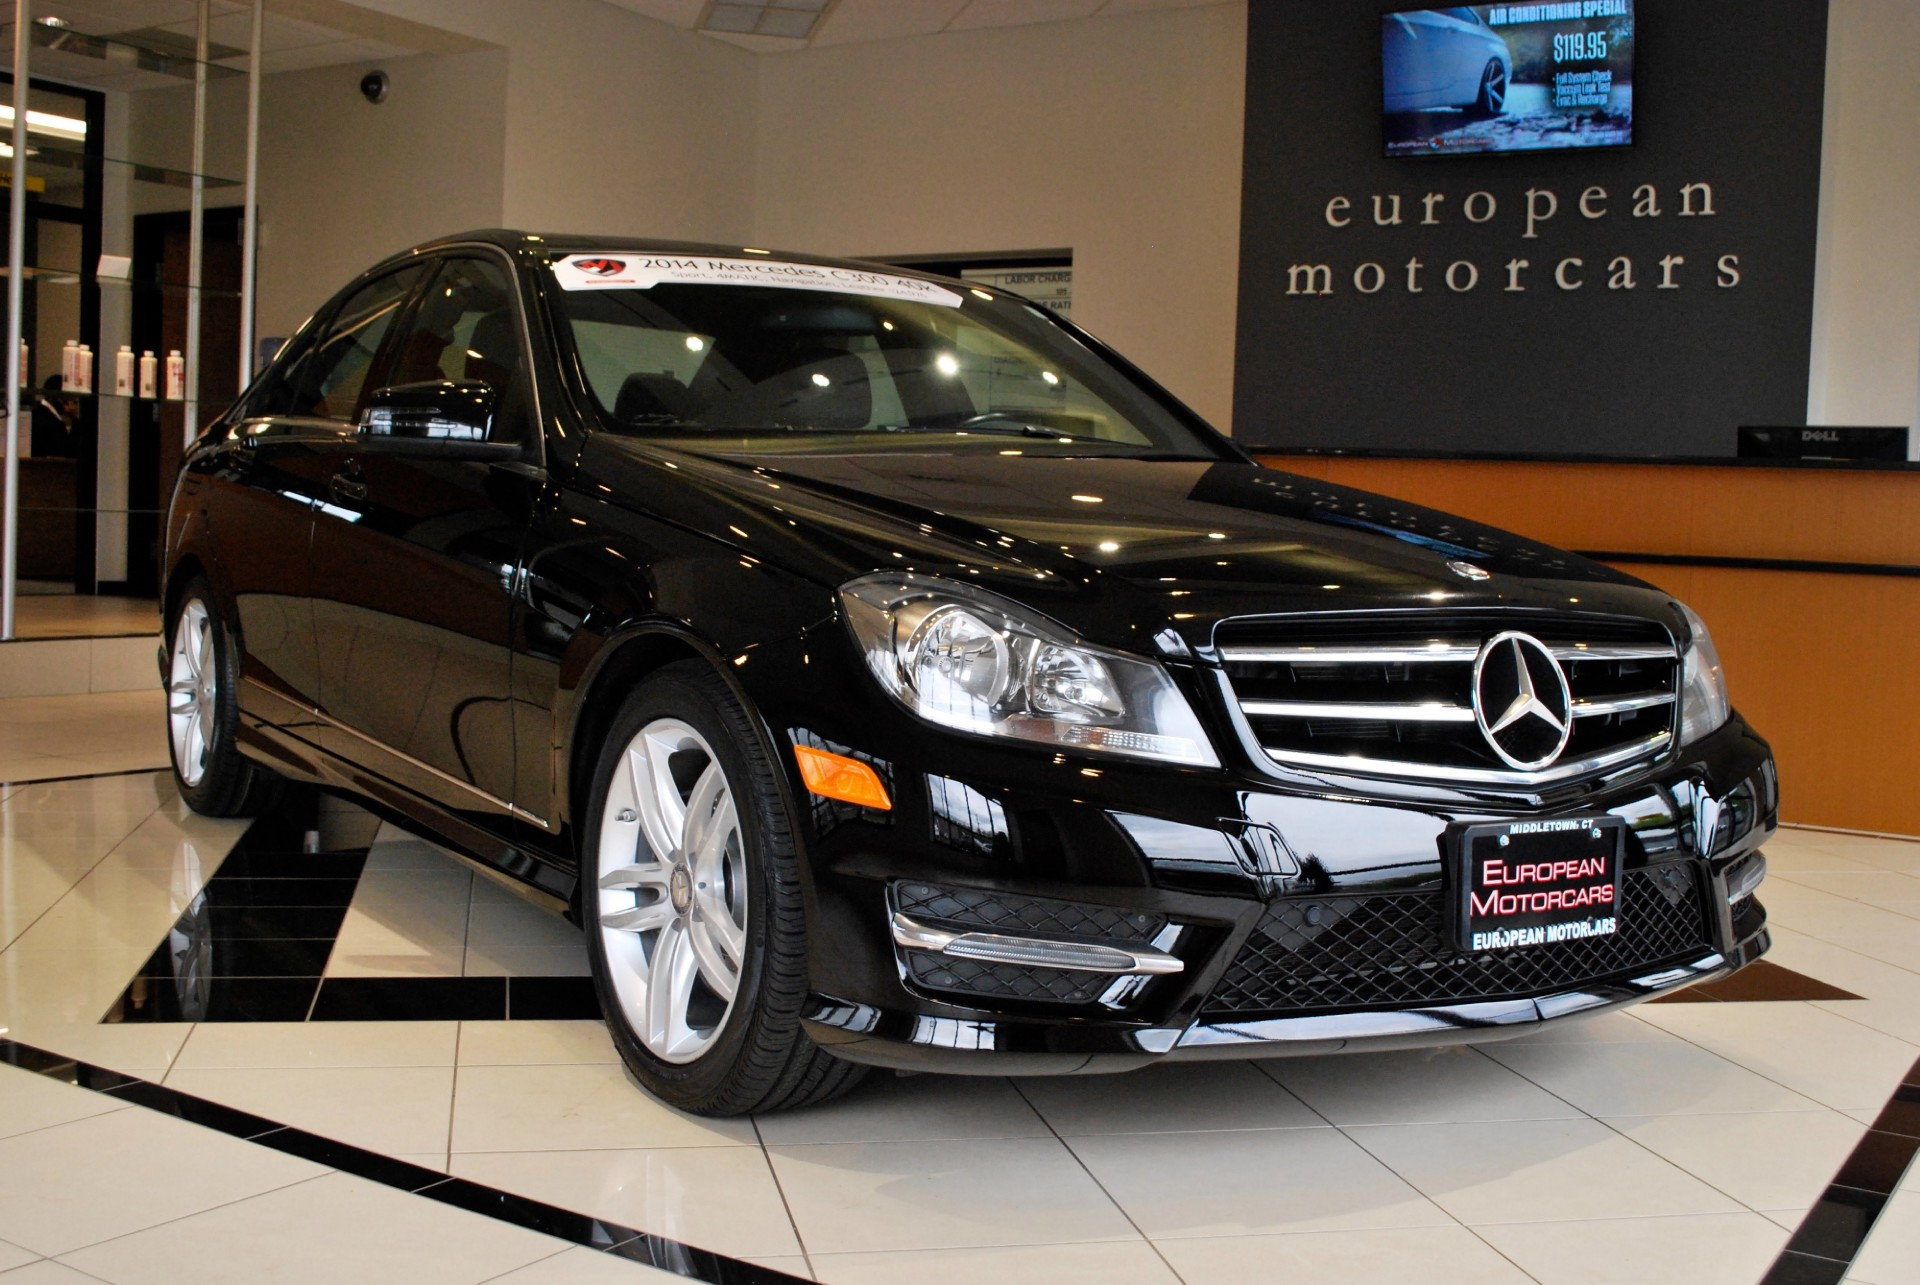 design additionally well awesome with for automotive car choices mercedes sale as outrageous of gallery benz